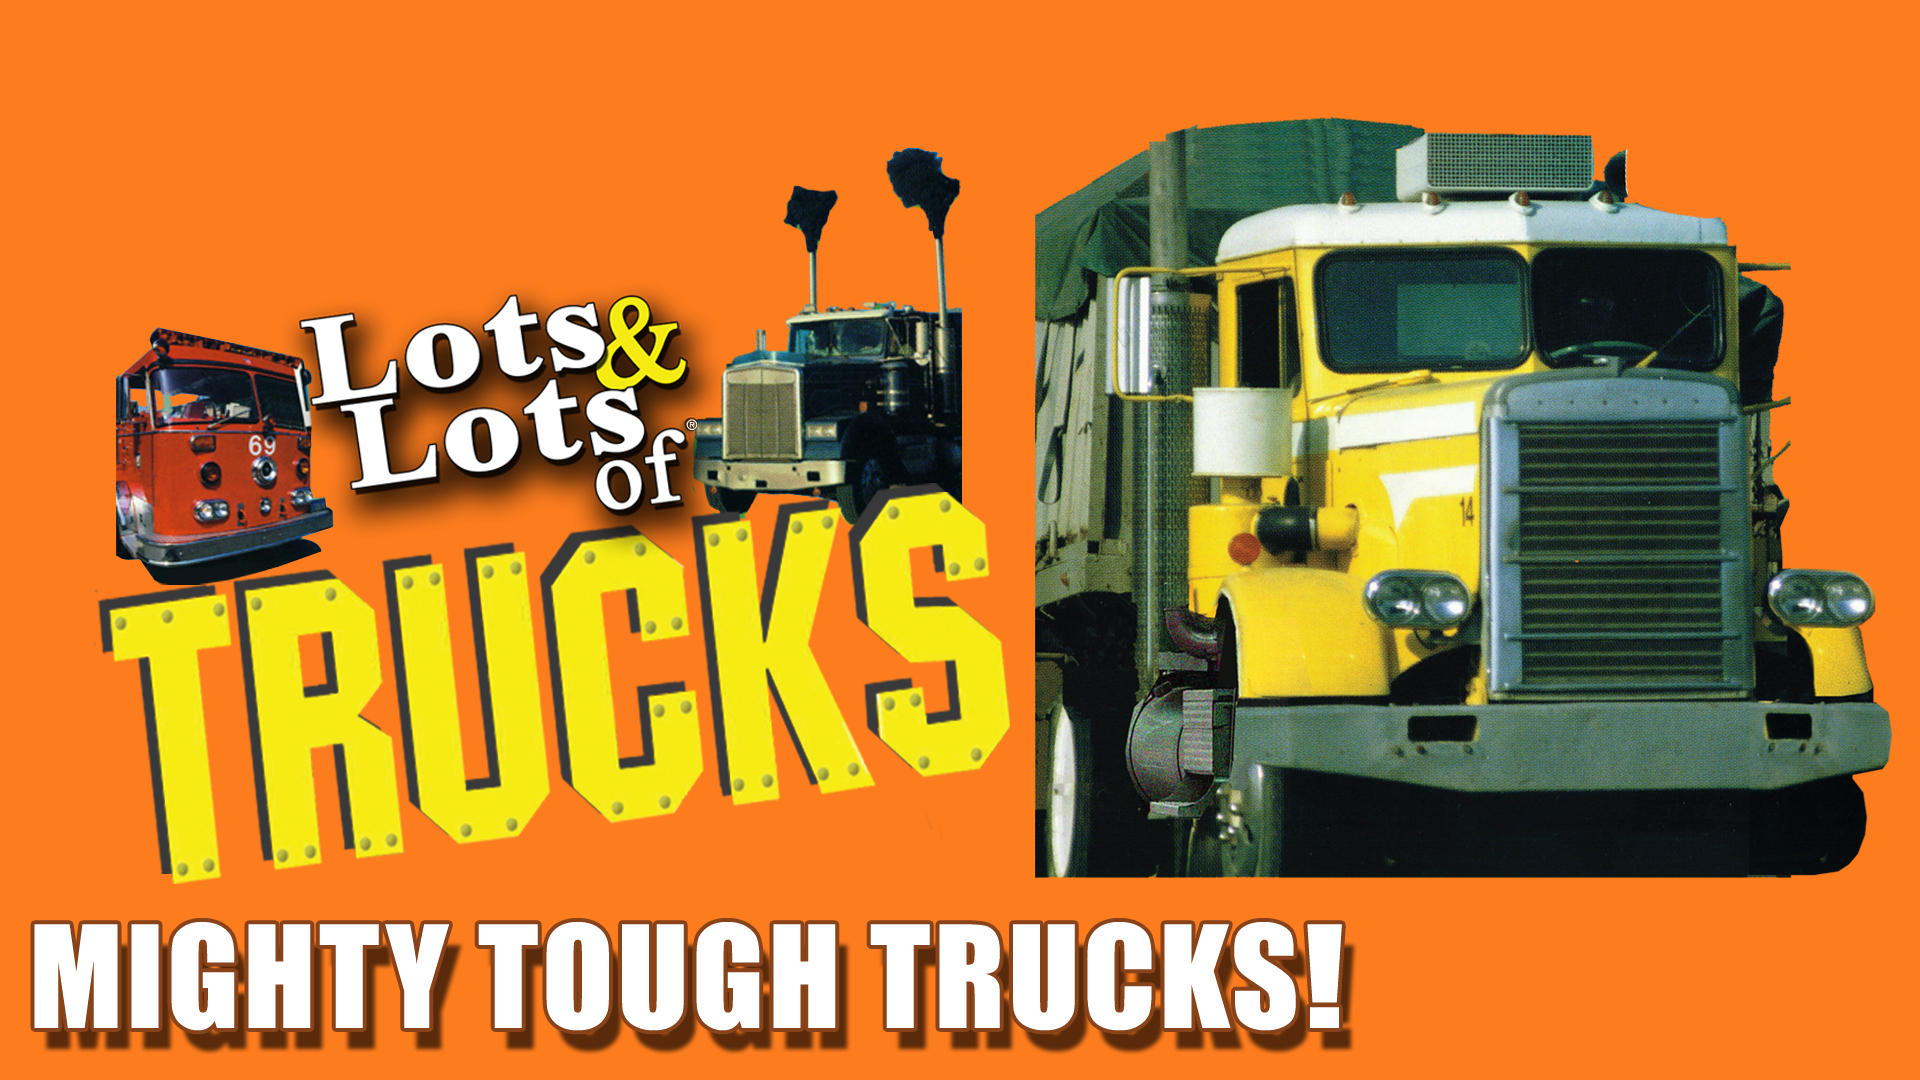 Lots & Lots of Trucks - Mighty Tough Trucks!